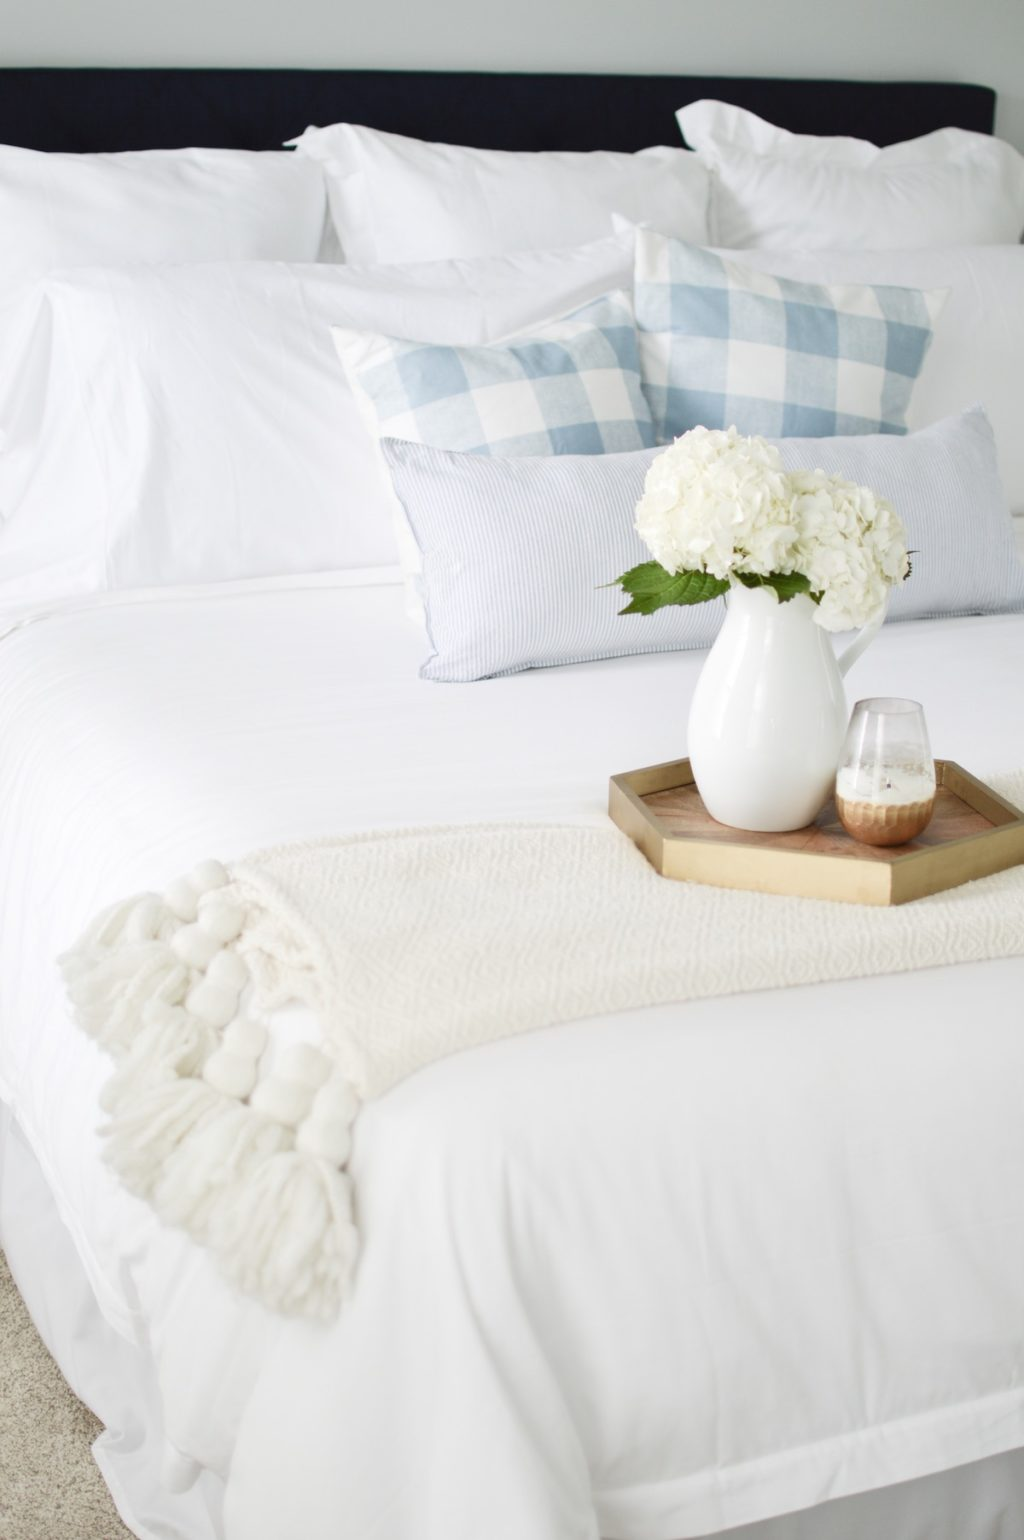 White and light blue bed